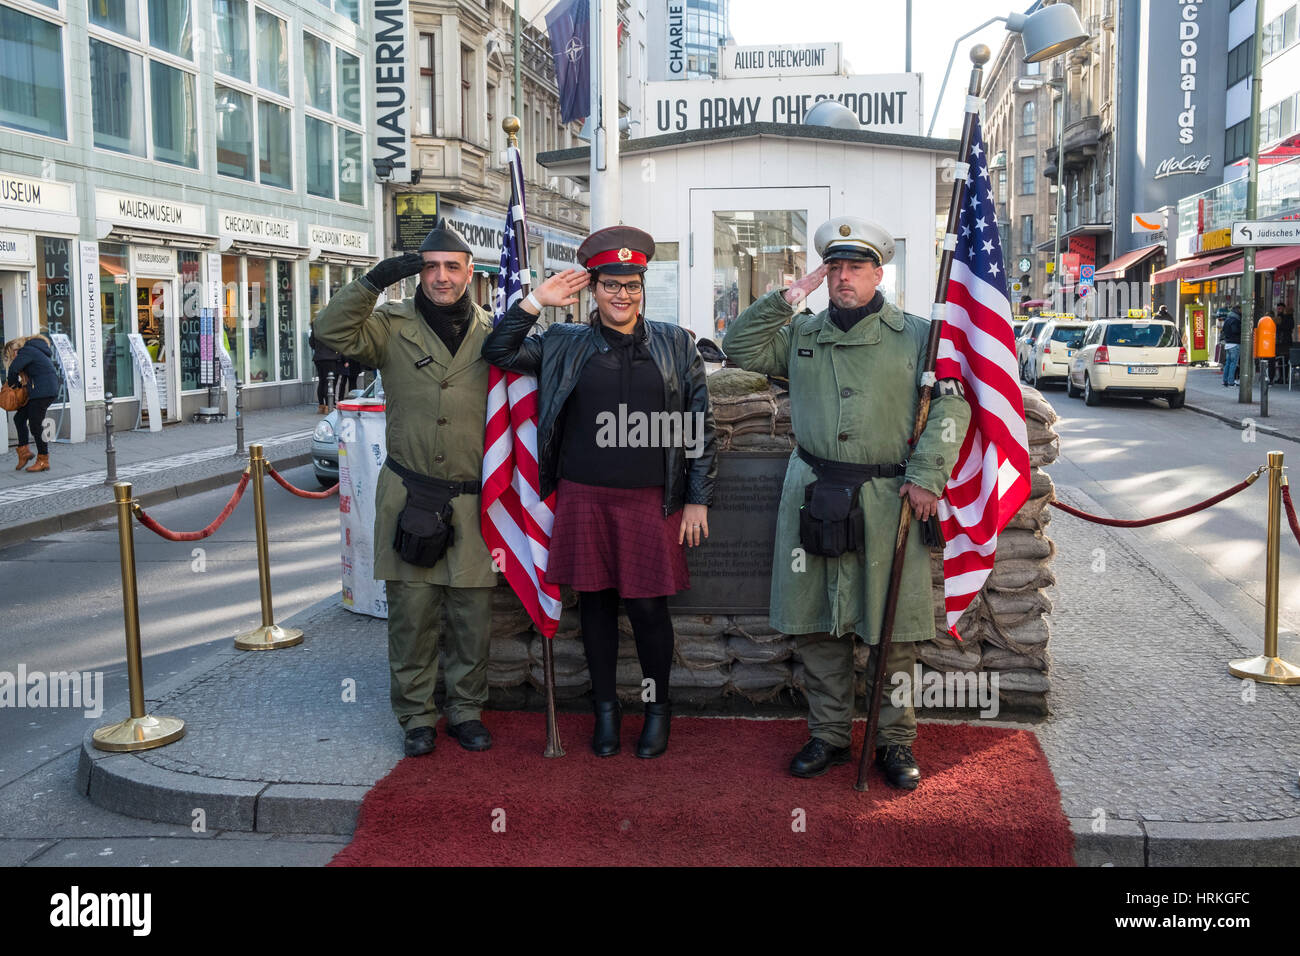 Tourists posing with American soldiers at Checkpoint Charlie in Berlin, Germany - Stock Image